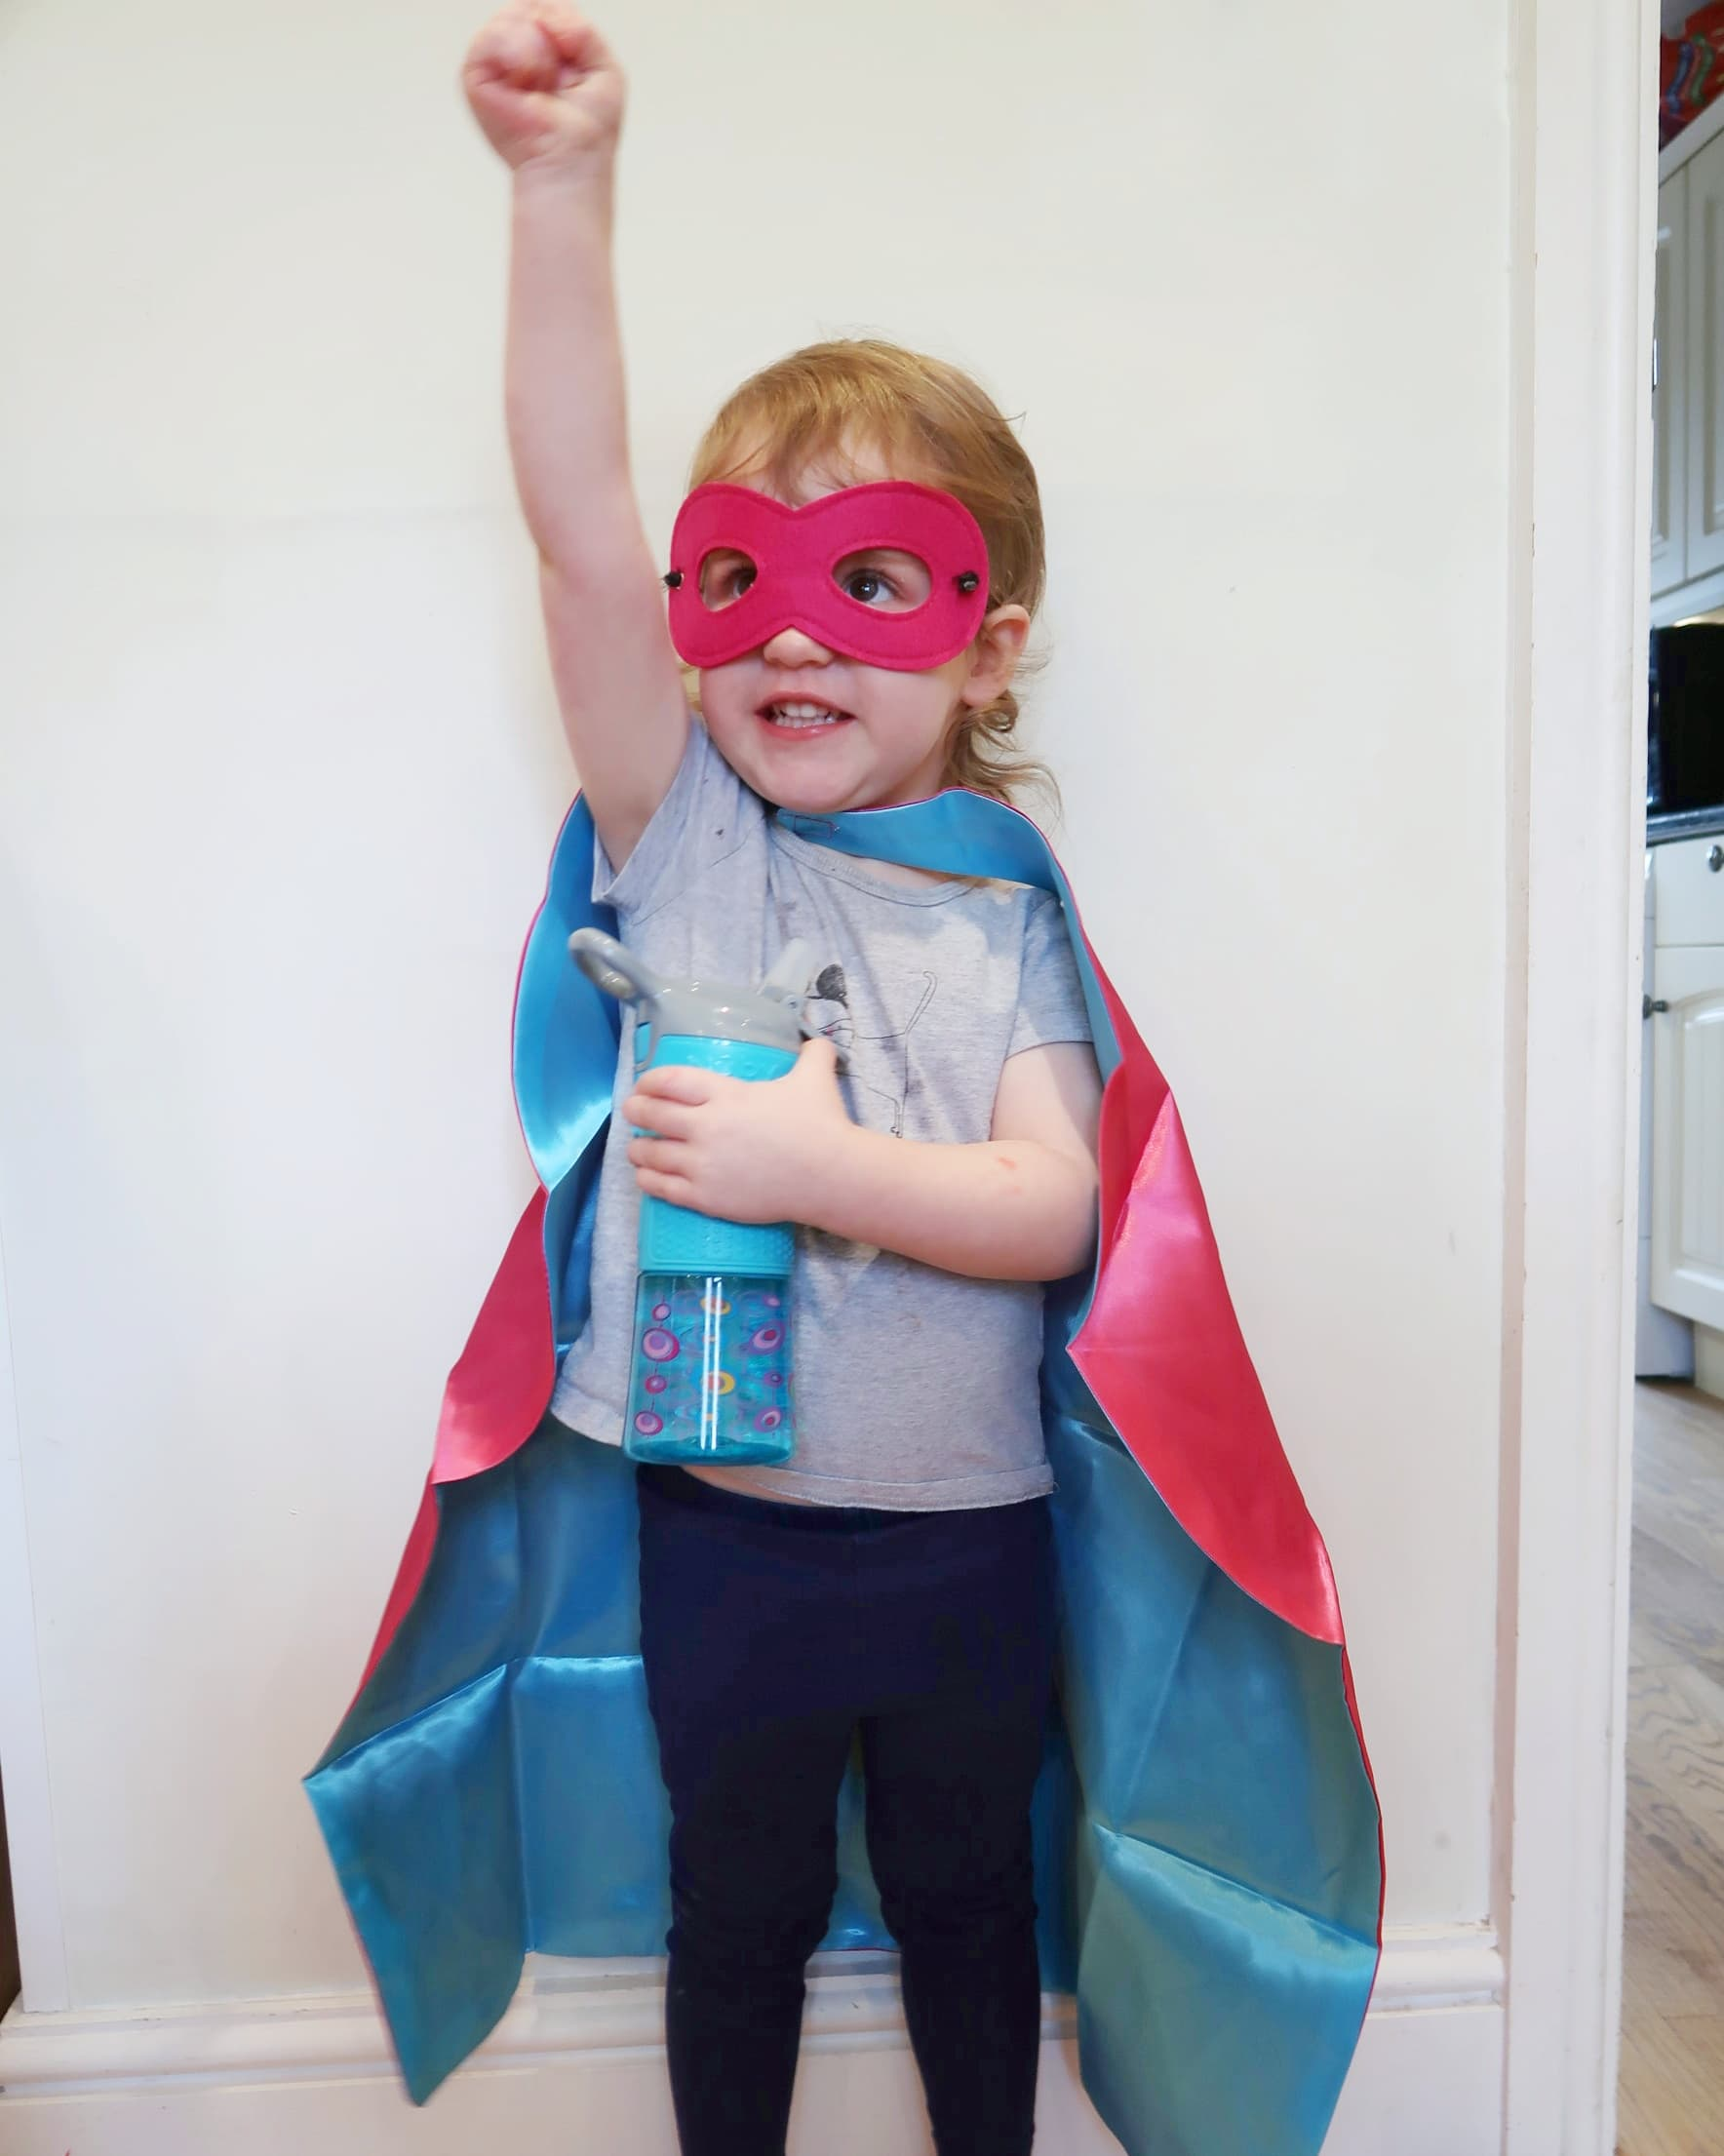 Littlest as a superhero with her Nuby Thirsty Kids cup